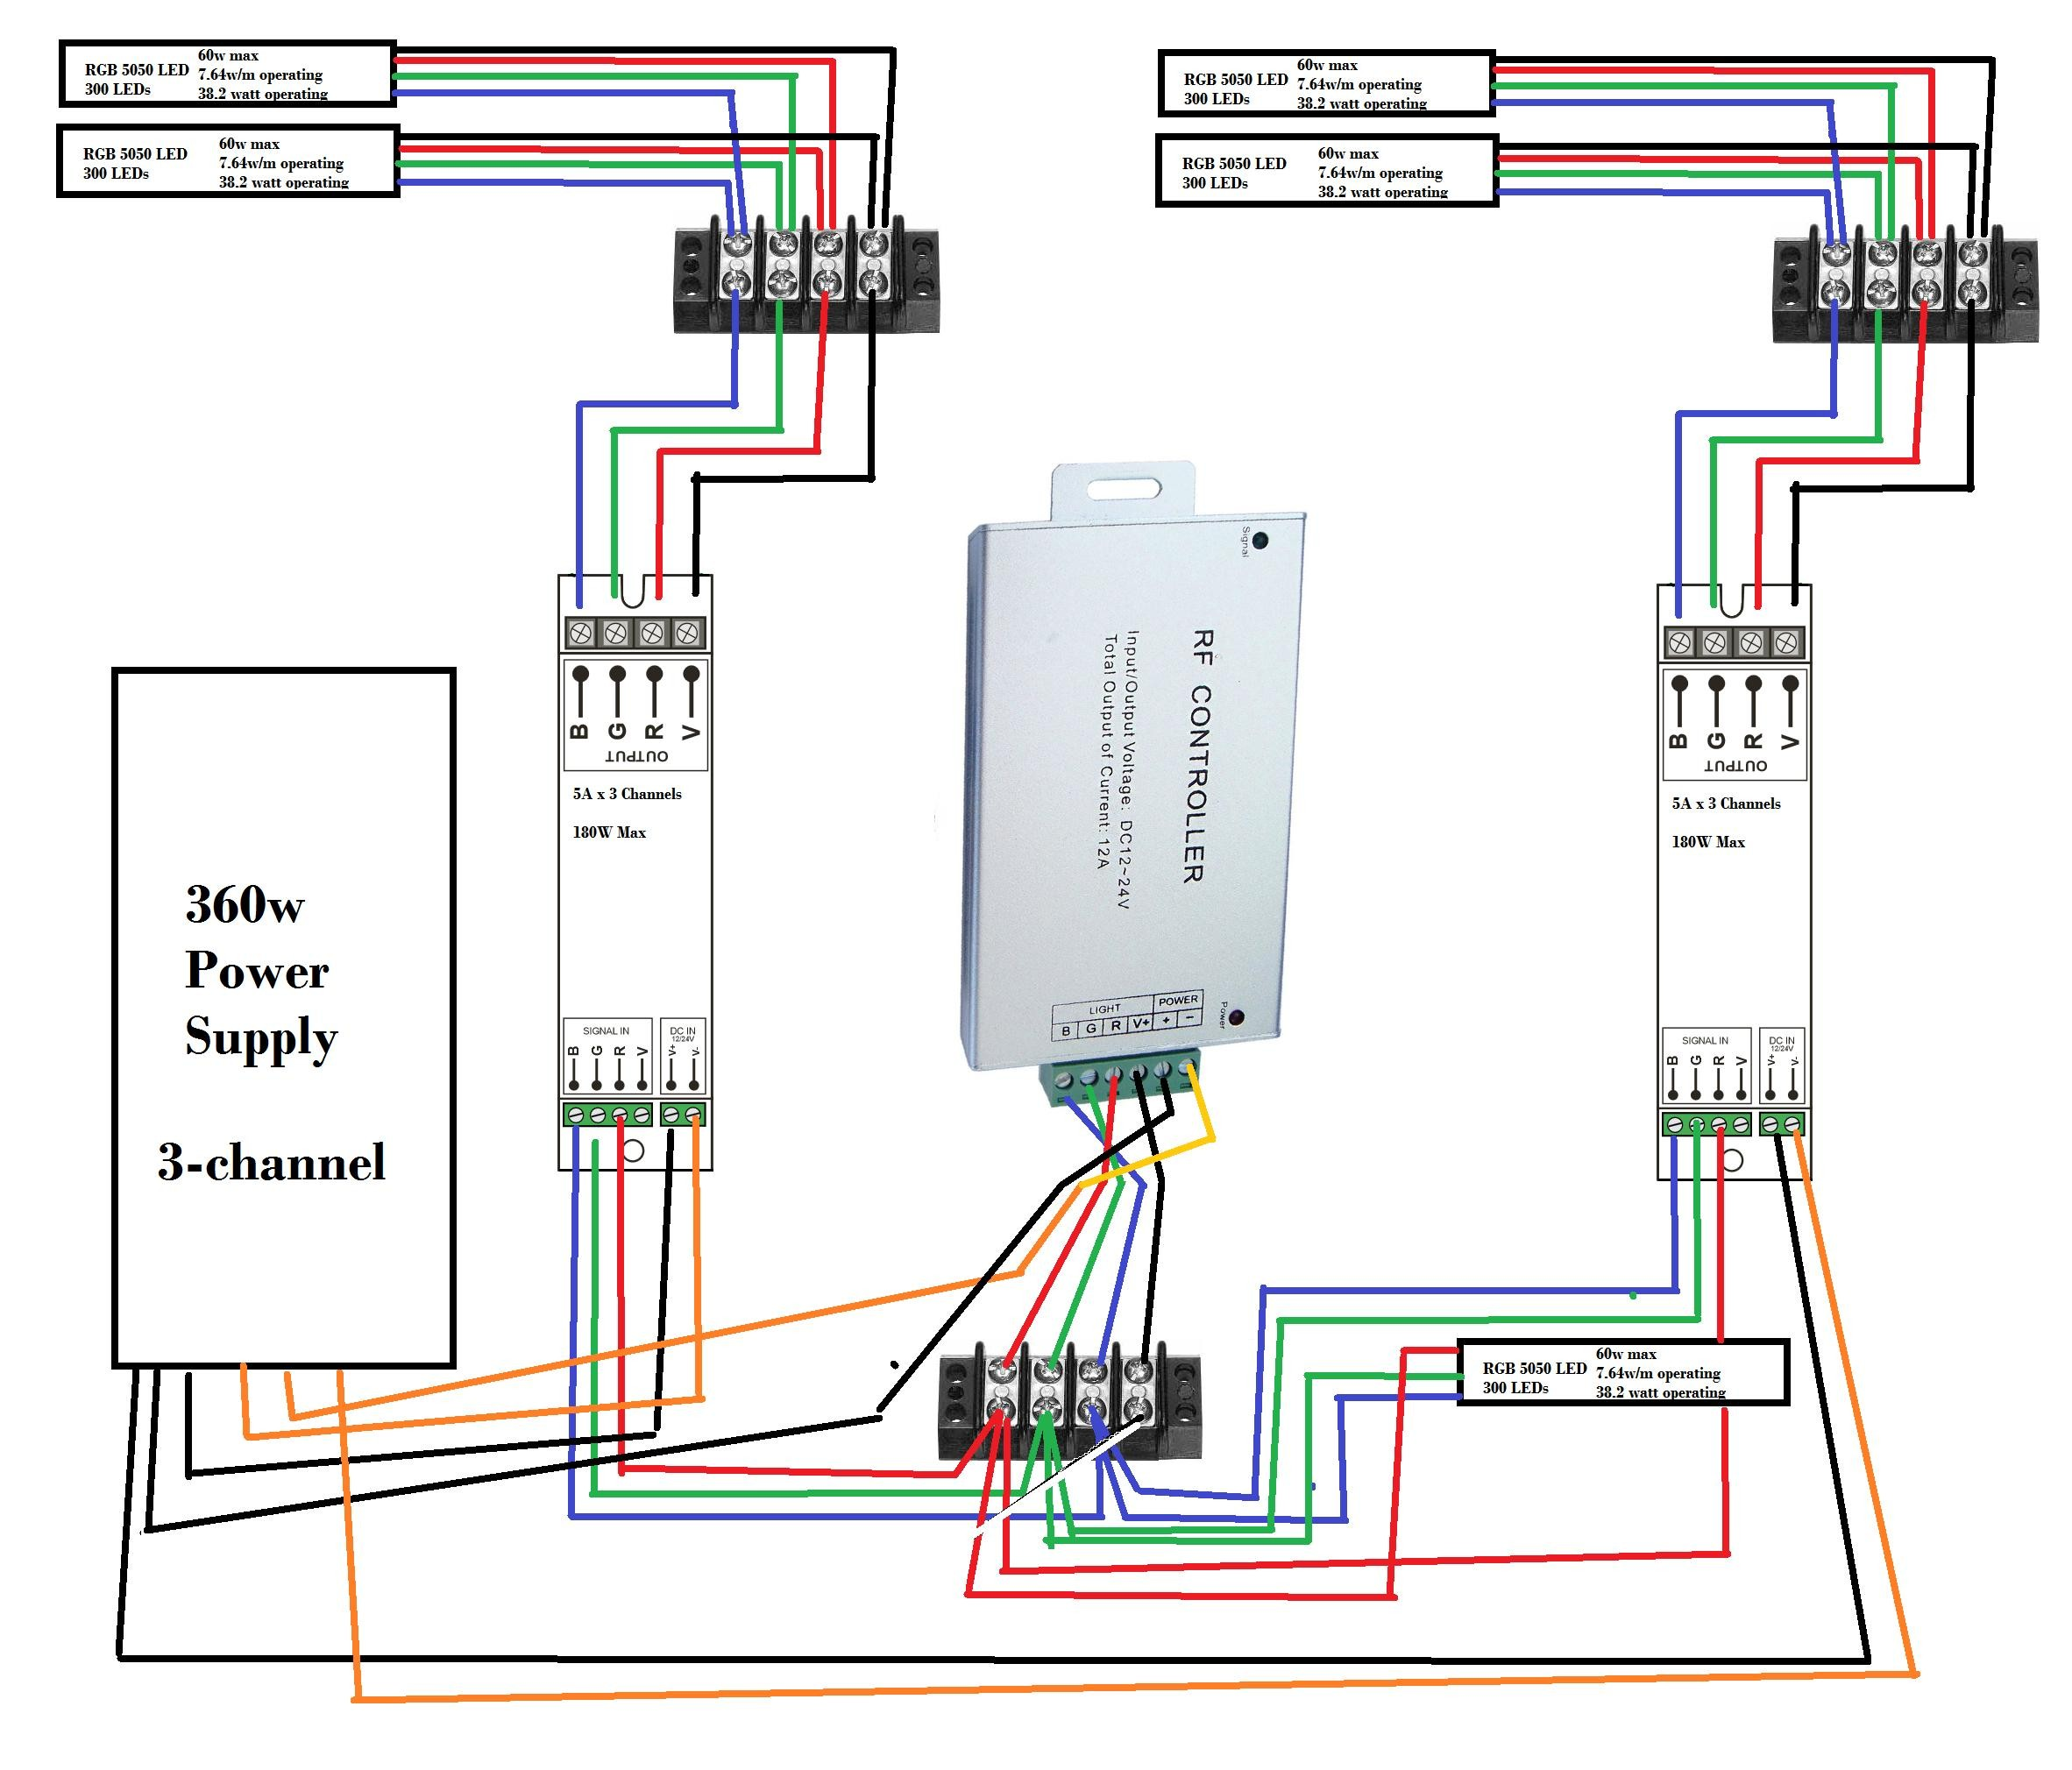 Rgb led wiring diagram unique wiring diagram image wiring diagram rgb led strip controller circuit y8k8m within light asfbconference2016 Choice Image